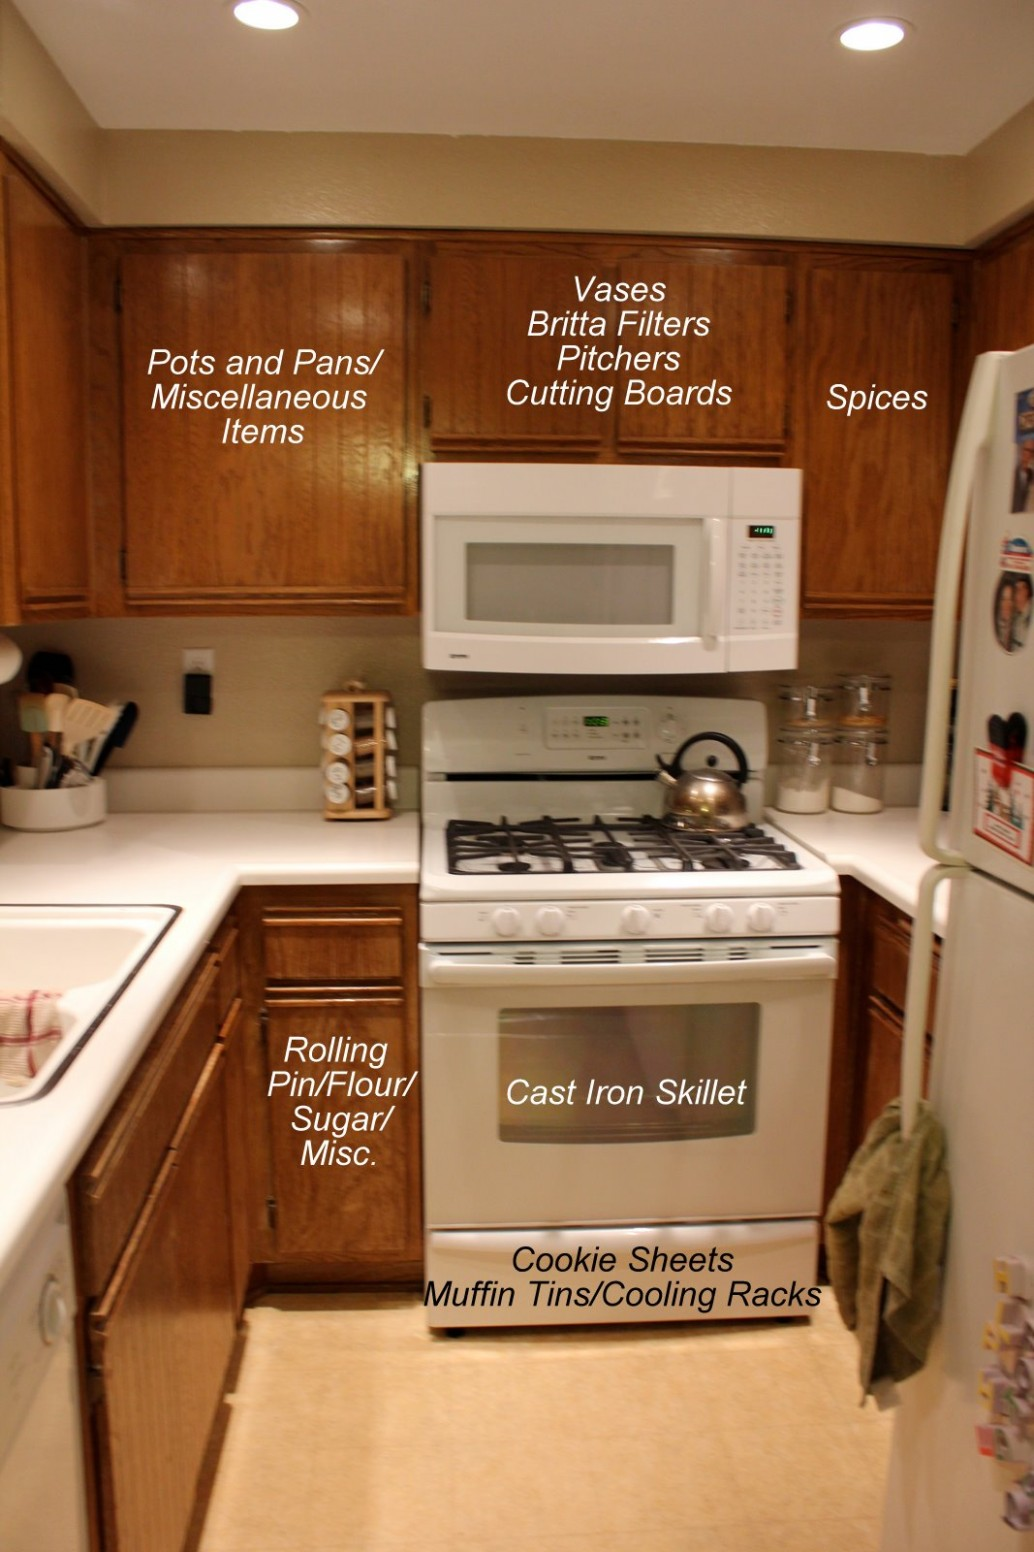 Near to Nothing: Small Kitchen Organization - How To Place Items In Kitchen Cabinets